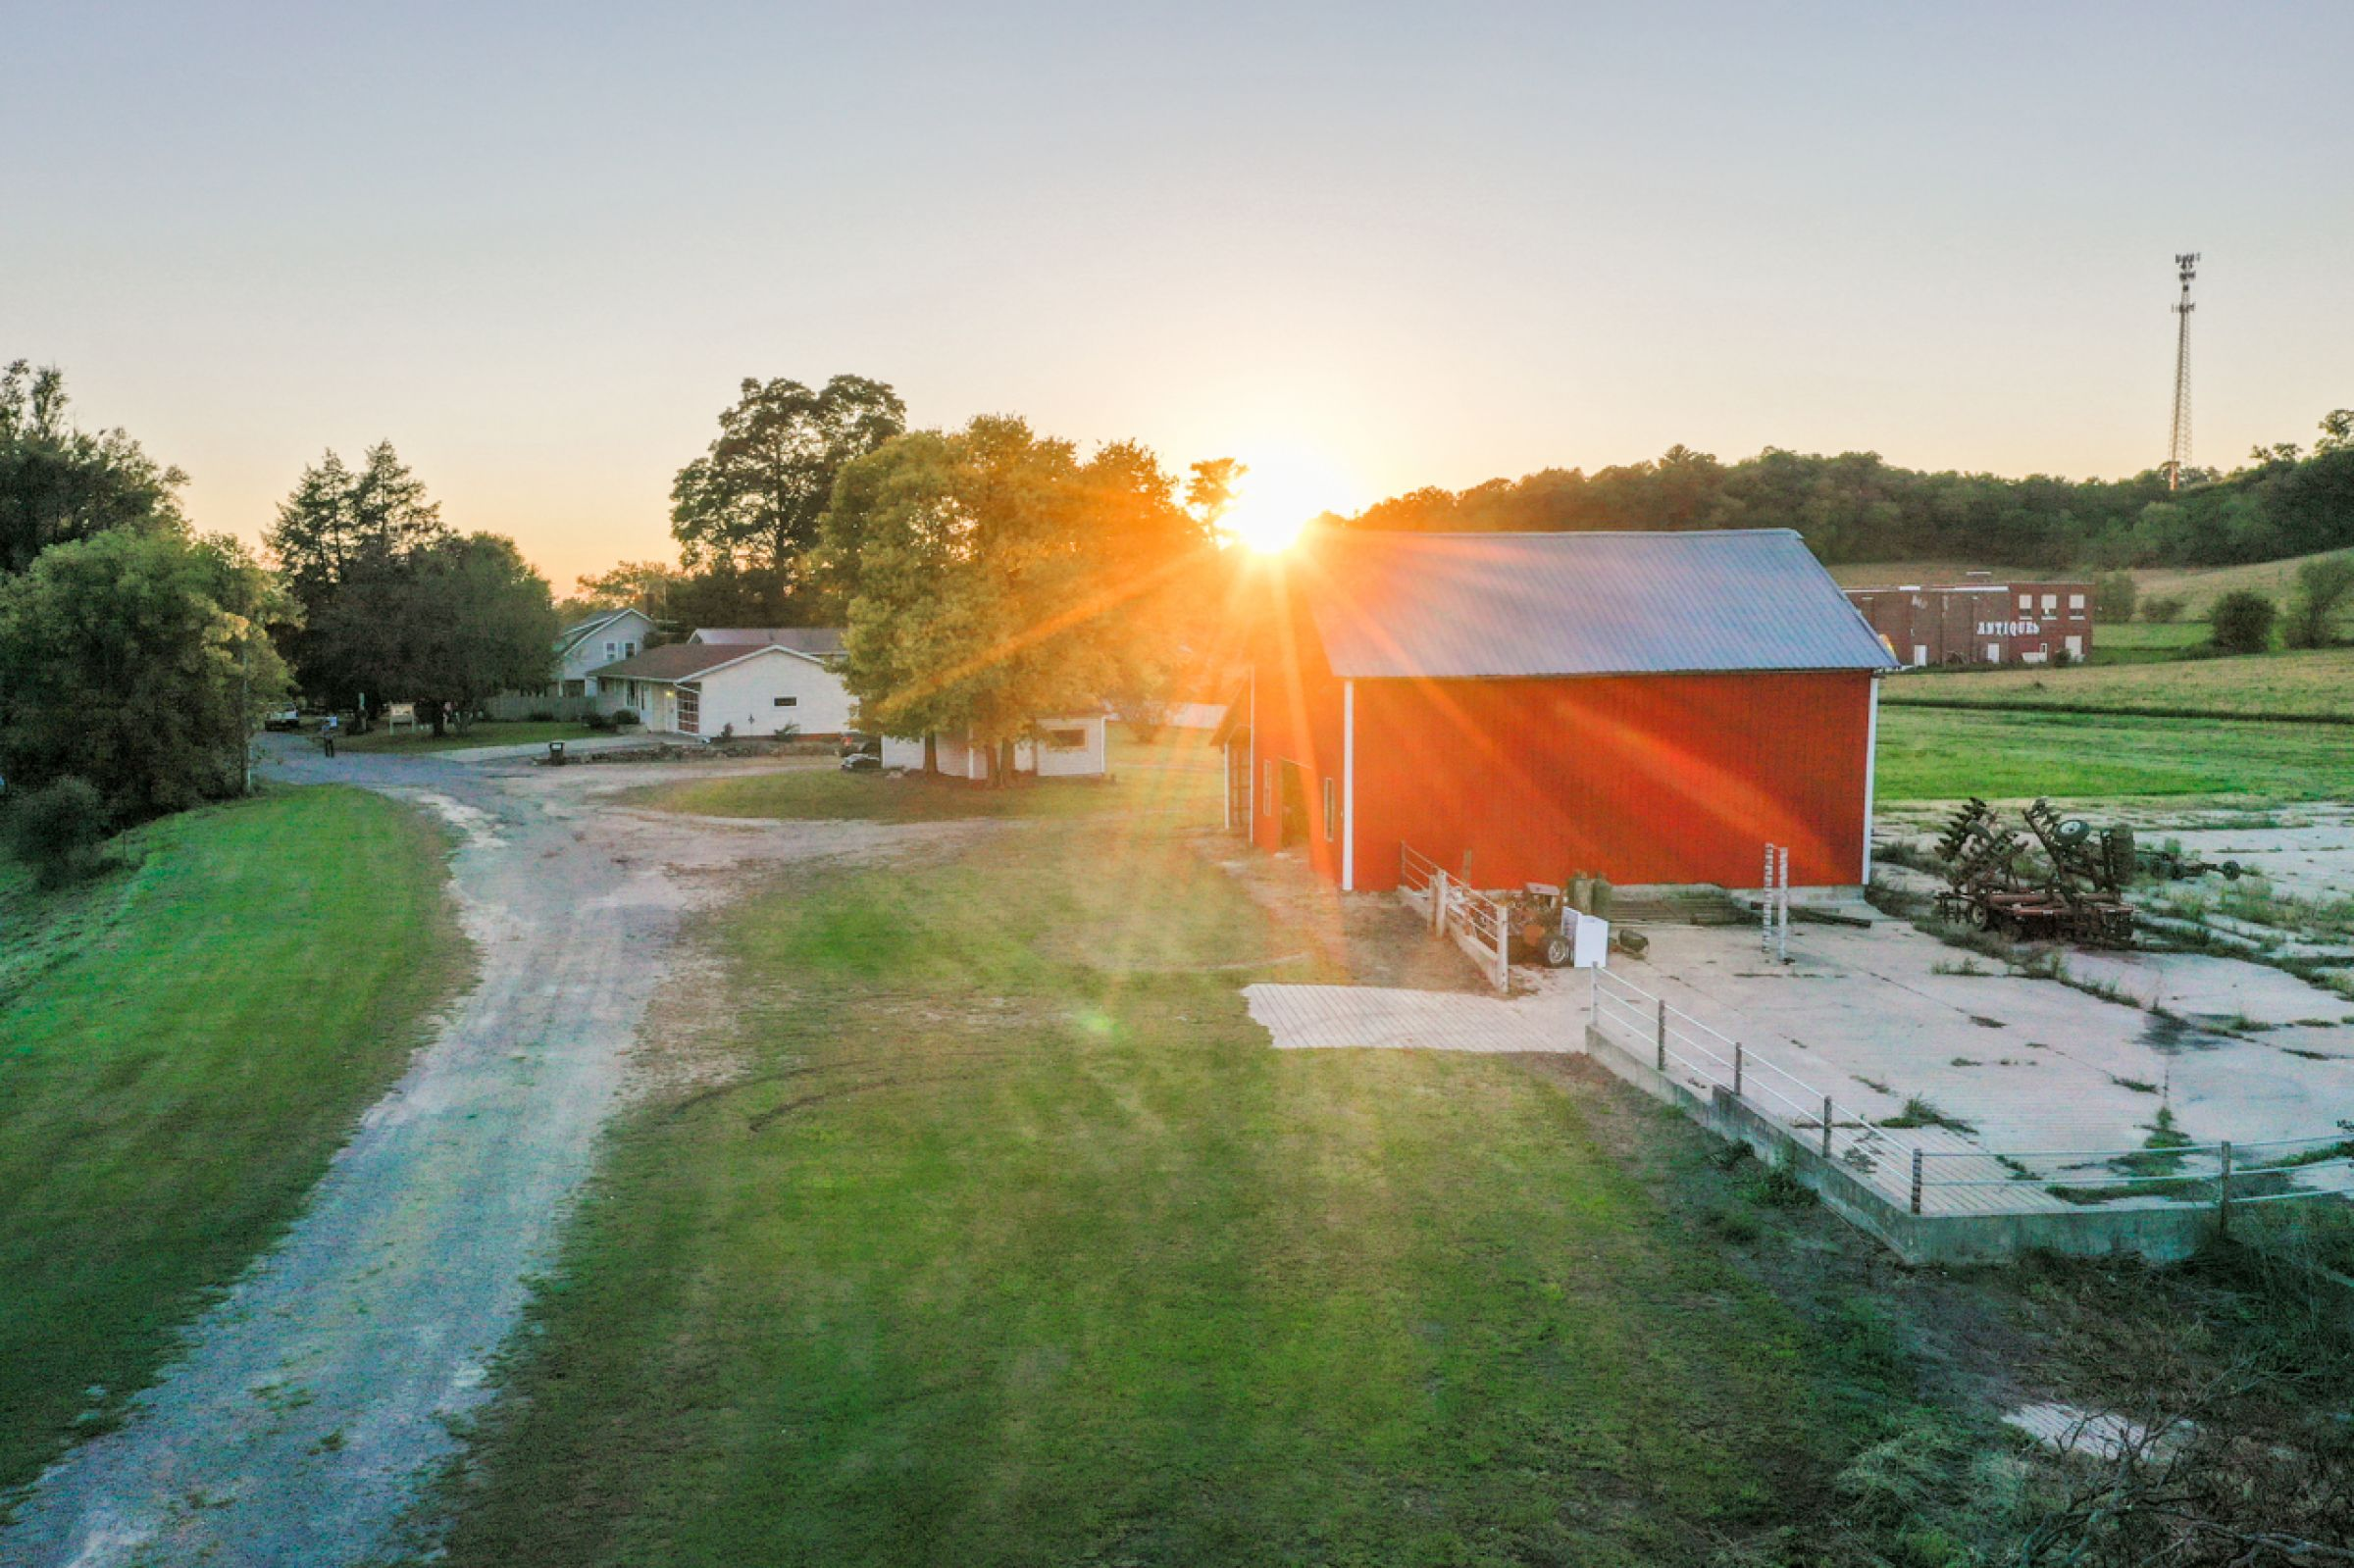 auctions-land-jackson-county-wisconsin-170-acres-listing-number-15737-5-2021-09-16-175248.jpg